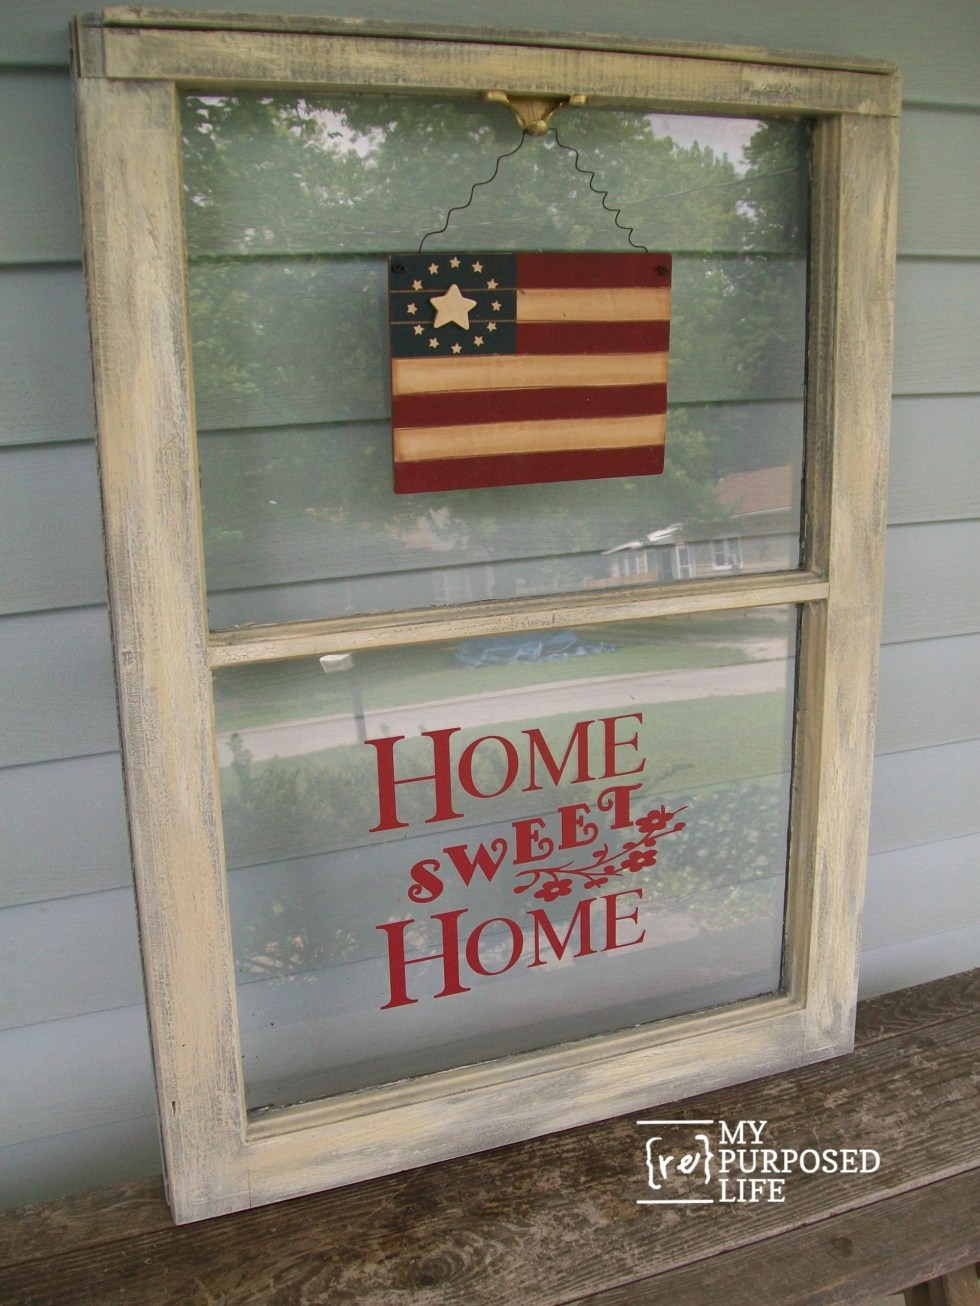 This easy repurposed window project can be done in an afternoon with these easy directions and tips. This is perfect for the 4th of July or Flag Day #MyRepurposedLife #repurposed #reclaimed #window #4thofJuly #flagday via @repurposedlife